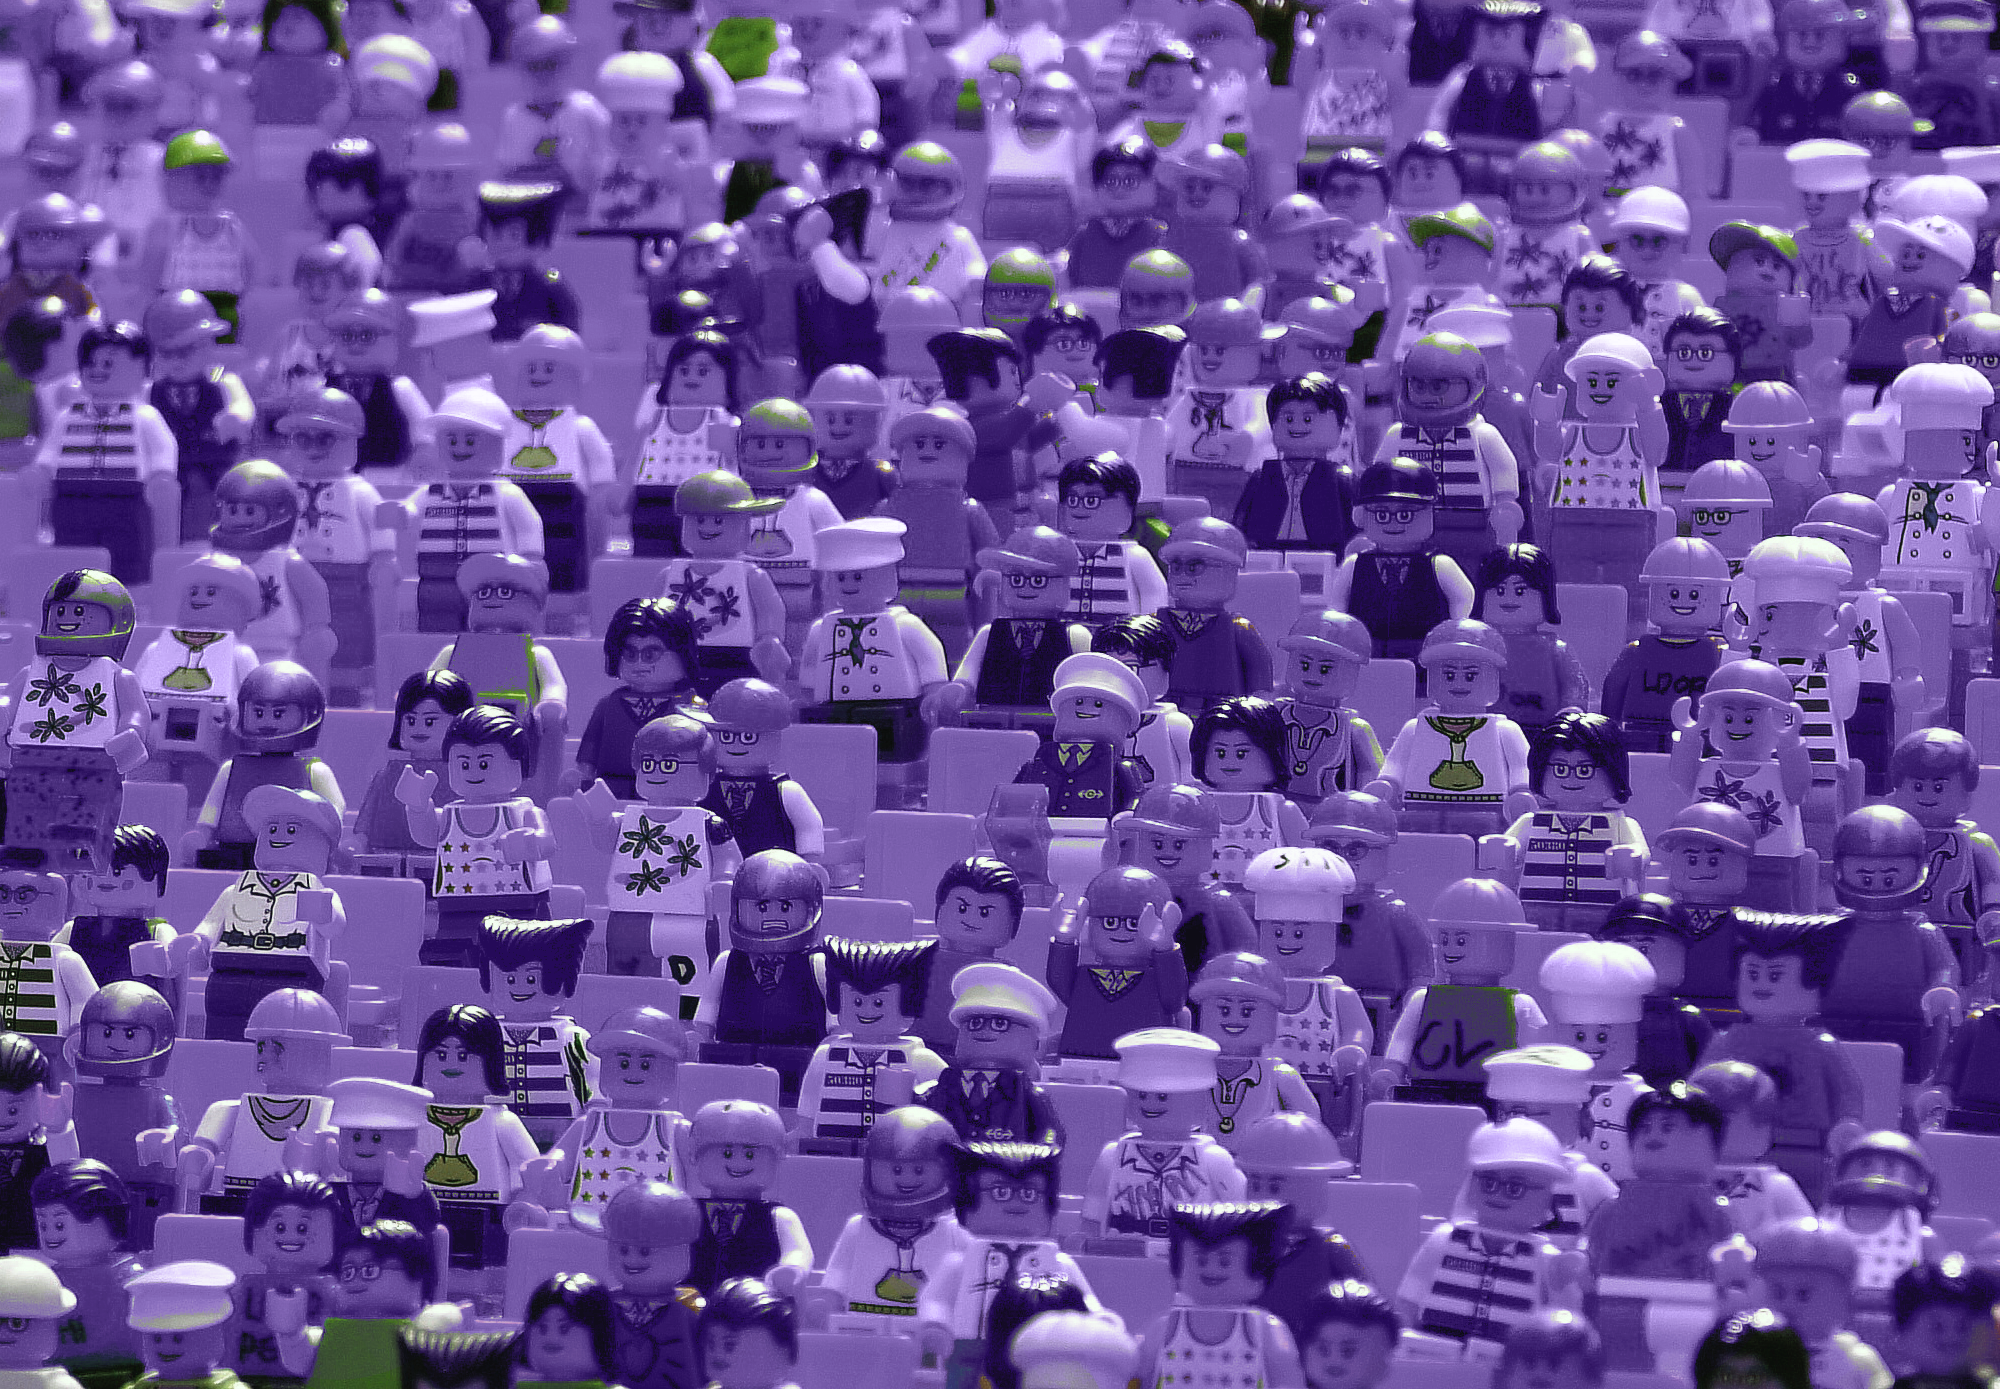 Crowd of lego people